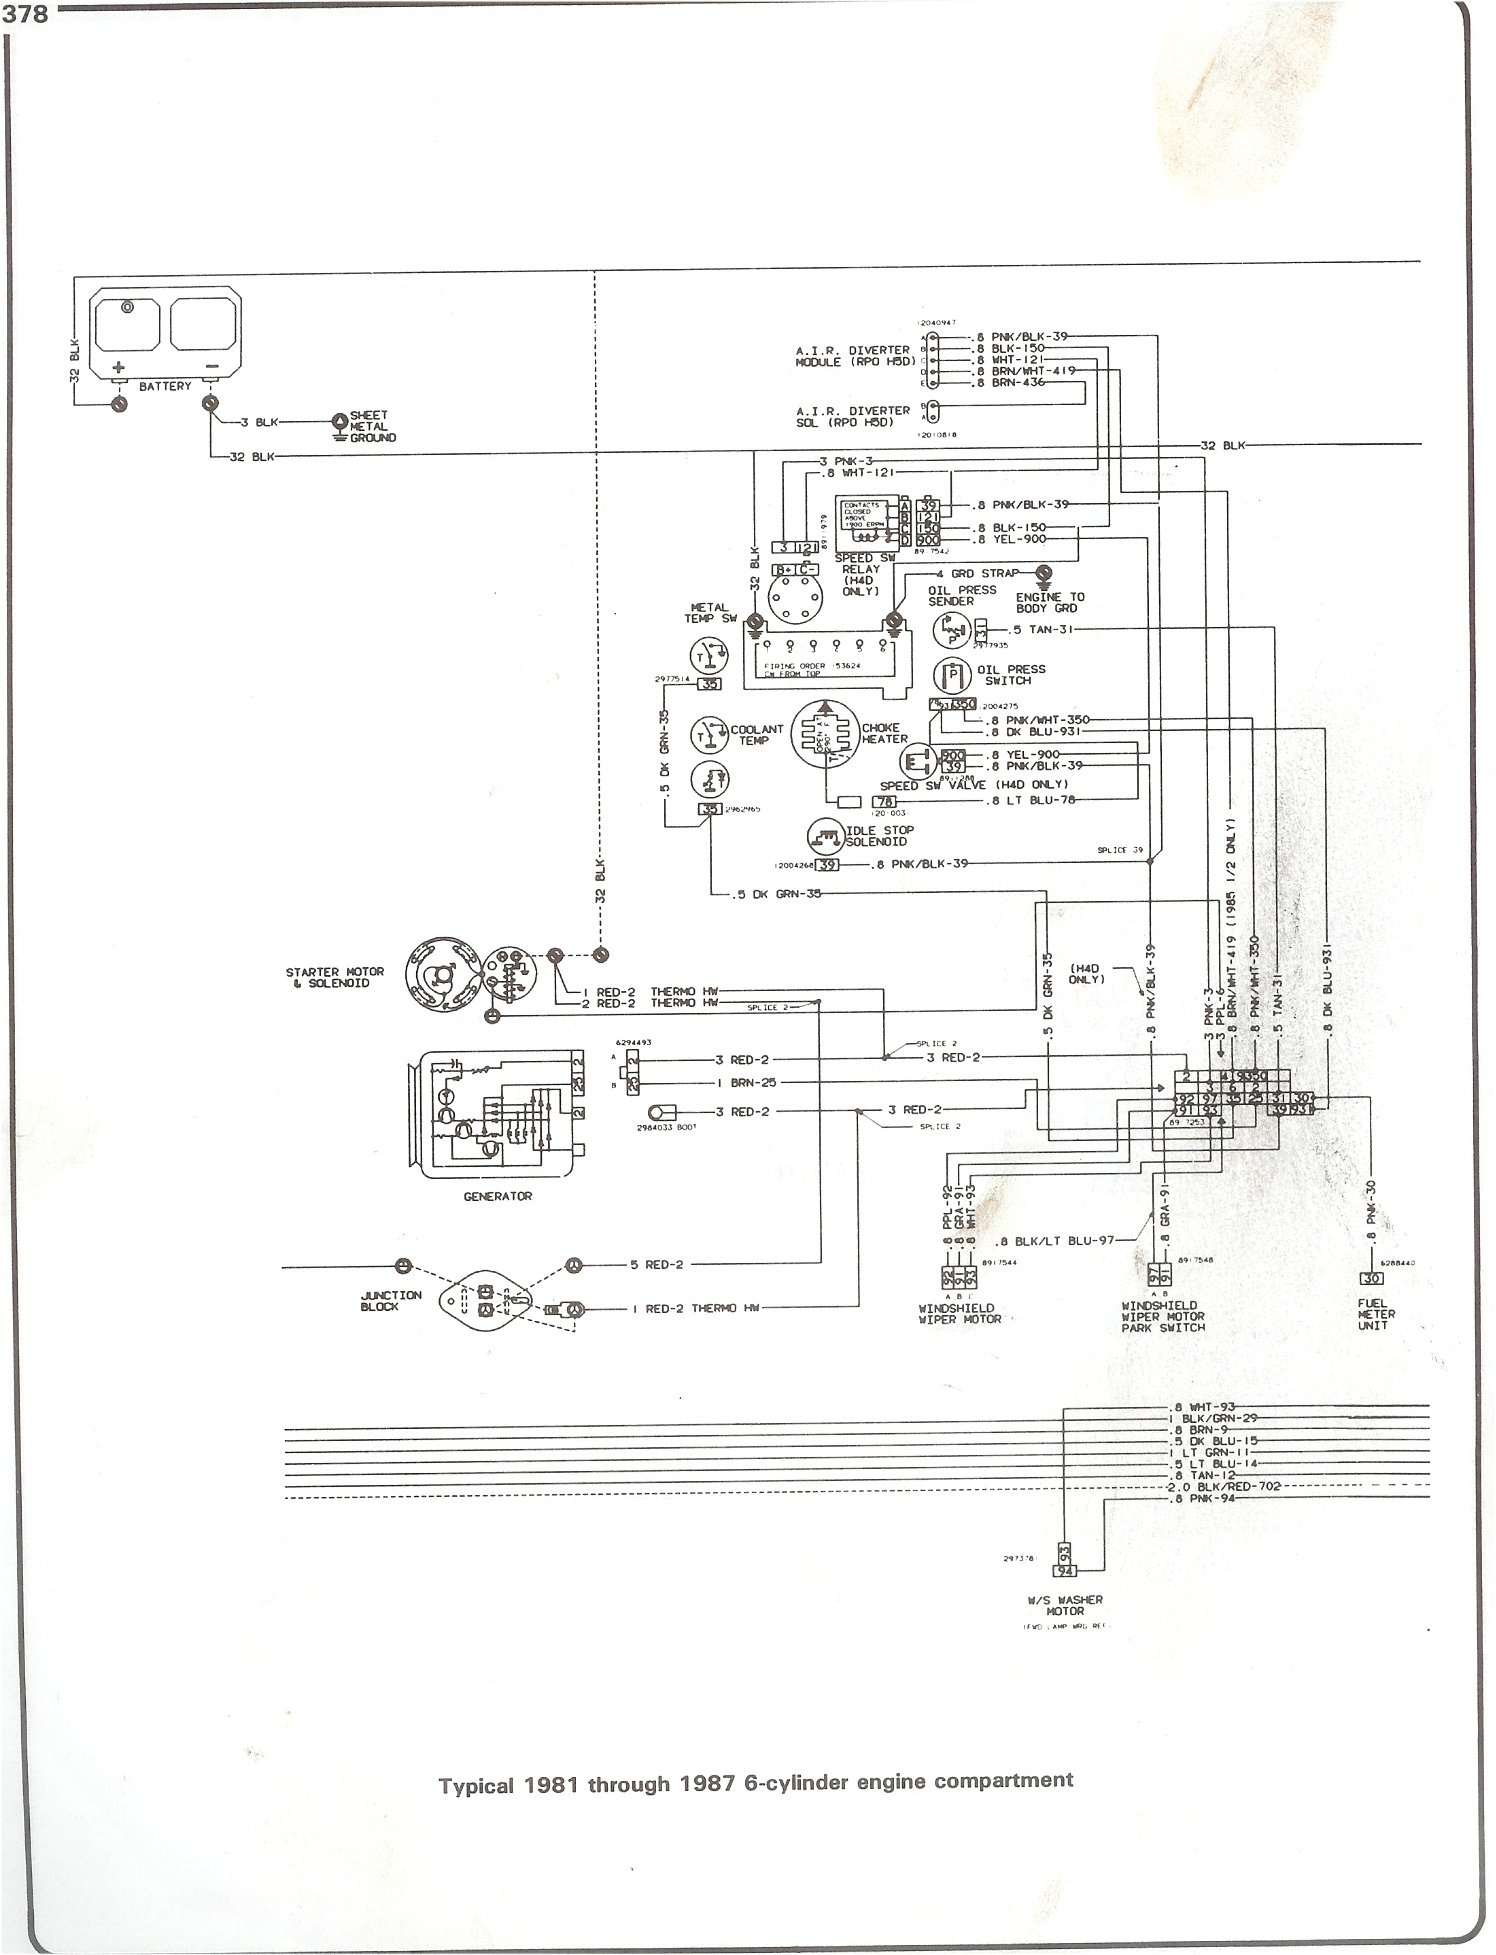 1987 chevy engine wiring diagram electrical diagrams forum u2022 rh jimmellon co uk